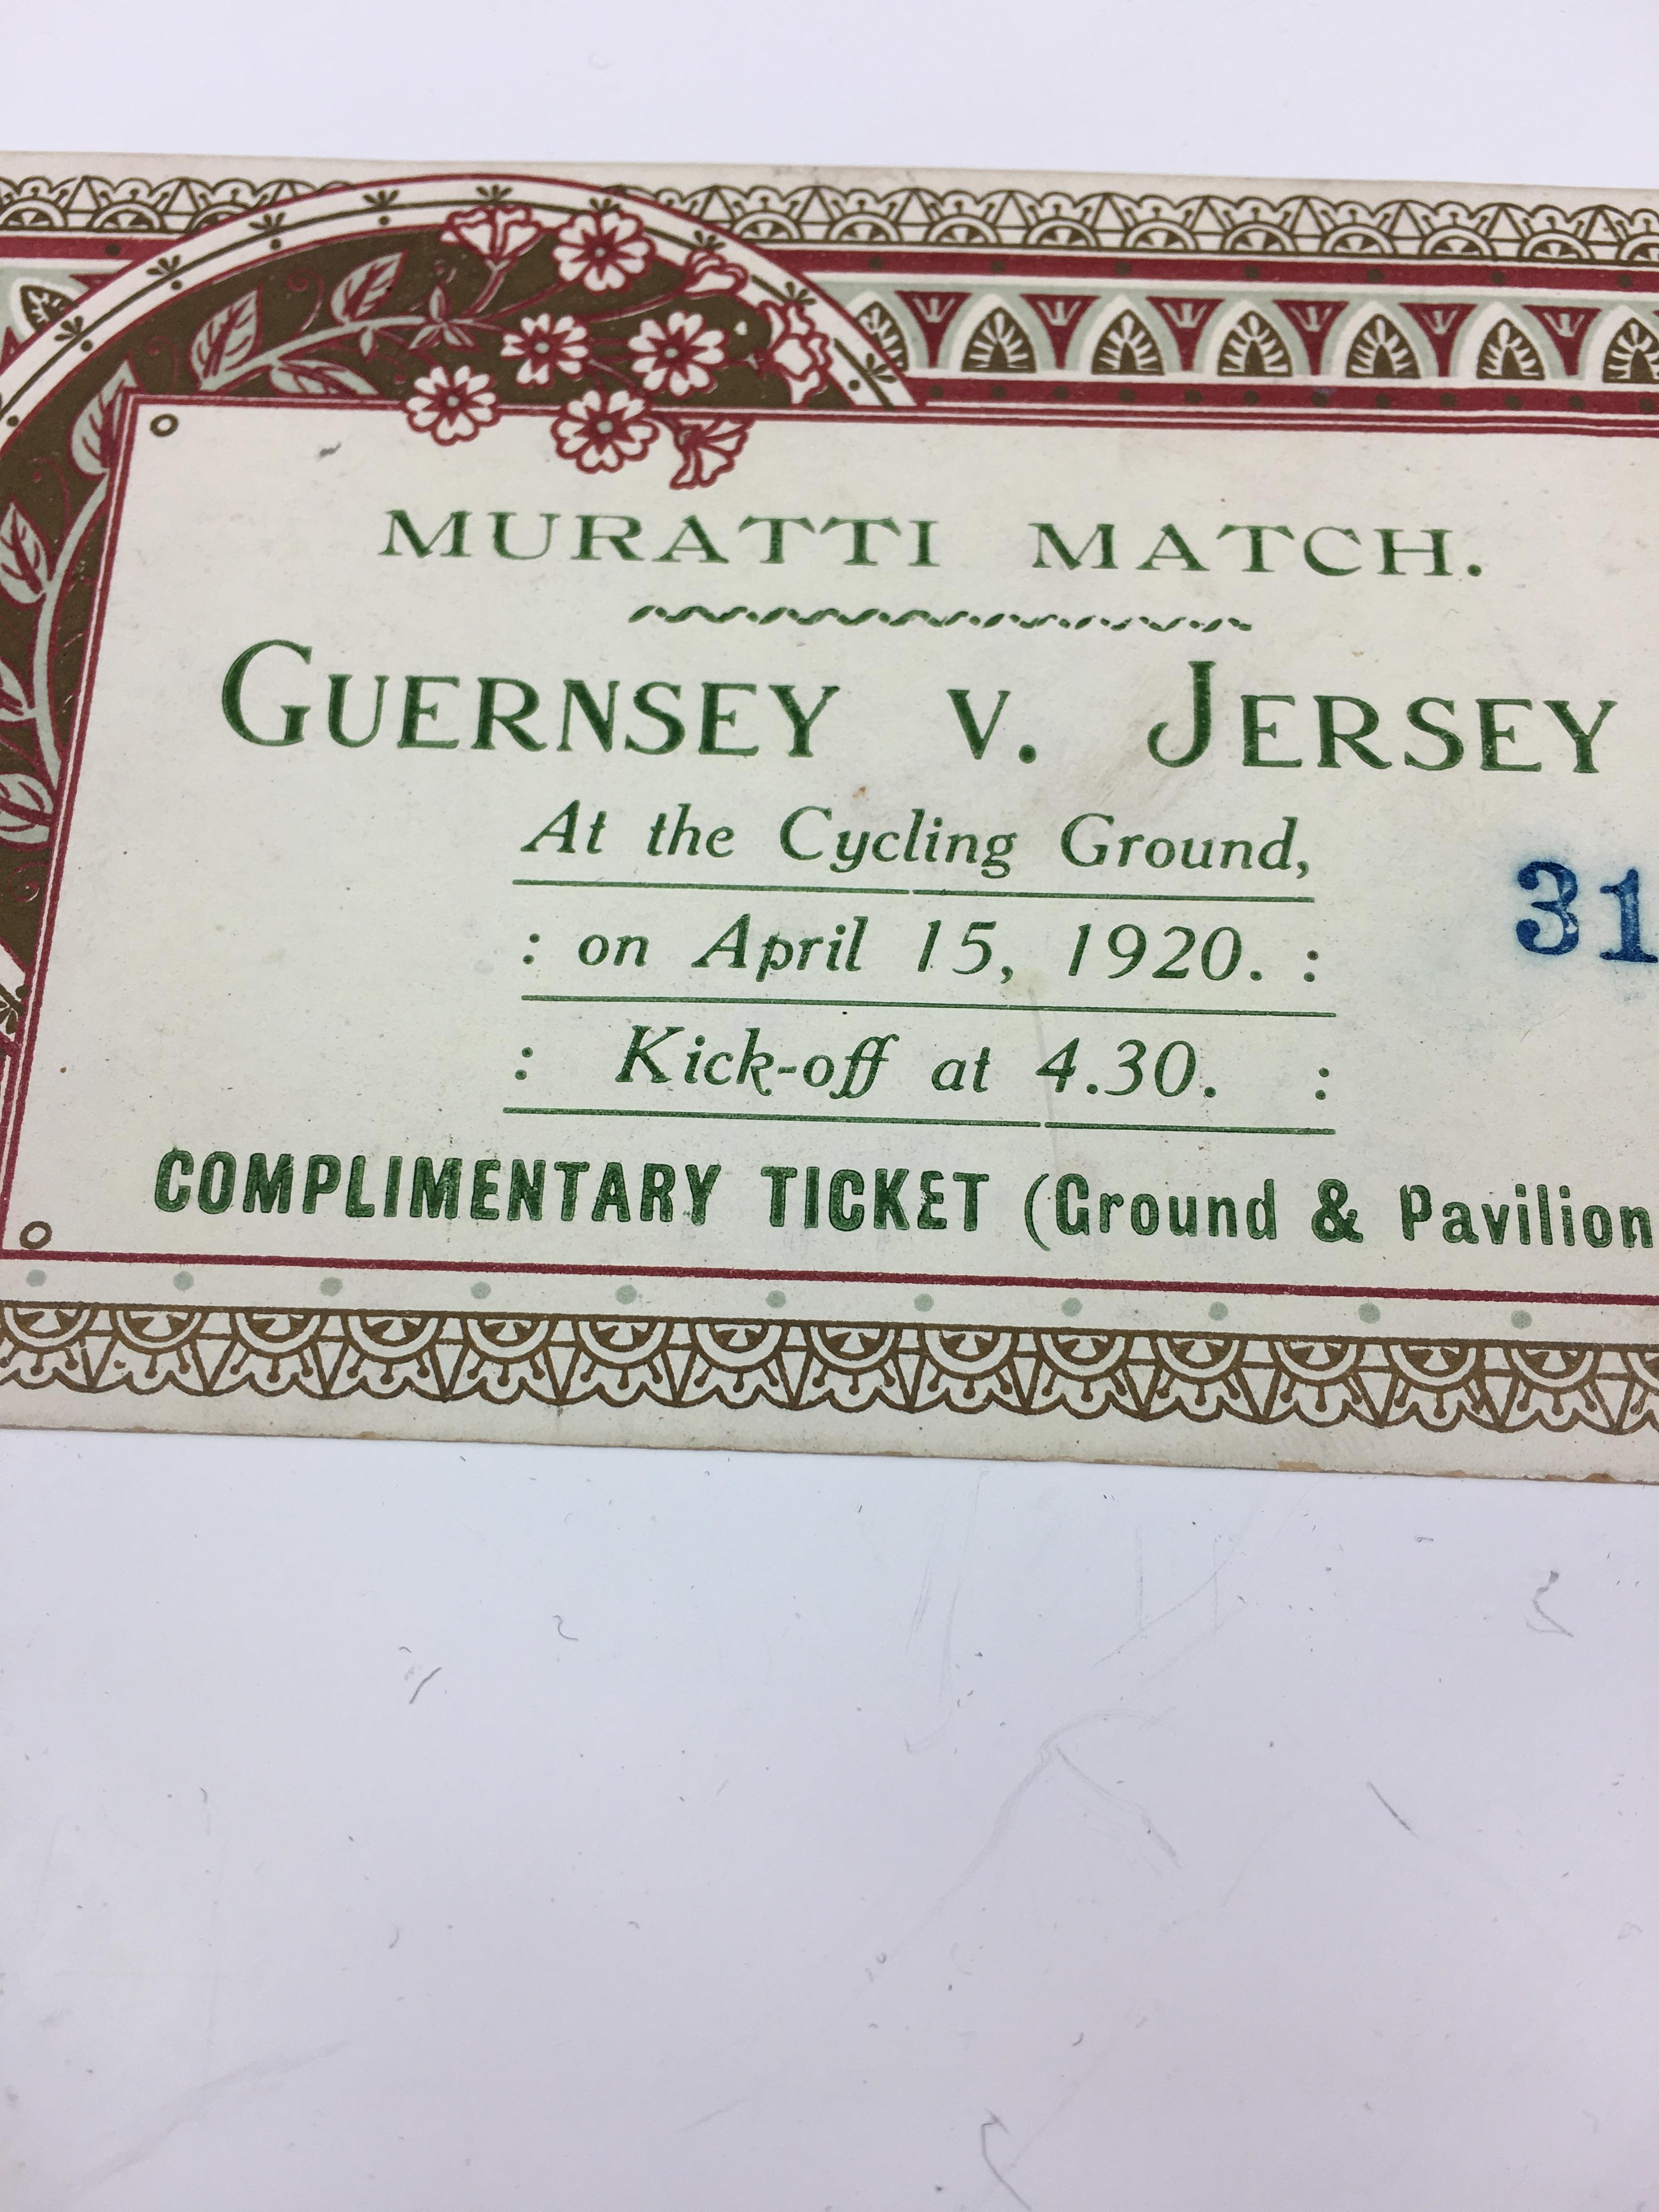 Lot 325 - An extremely rare 1920 Muratti Match gate ticket - Channel Islands football interest, the original